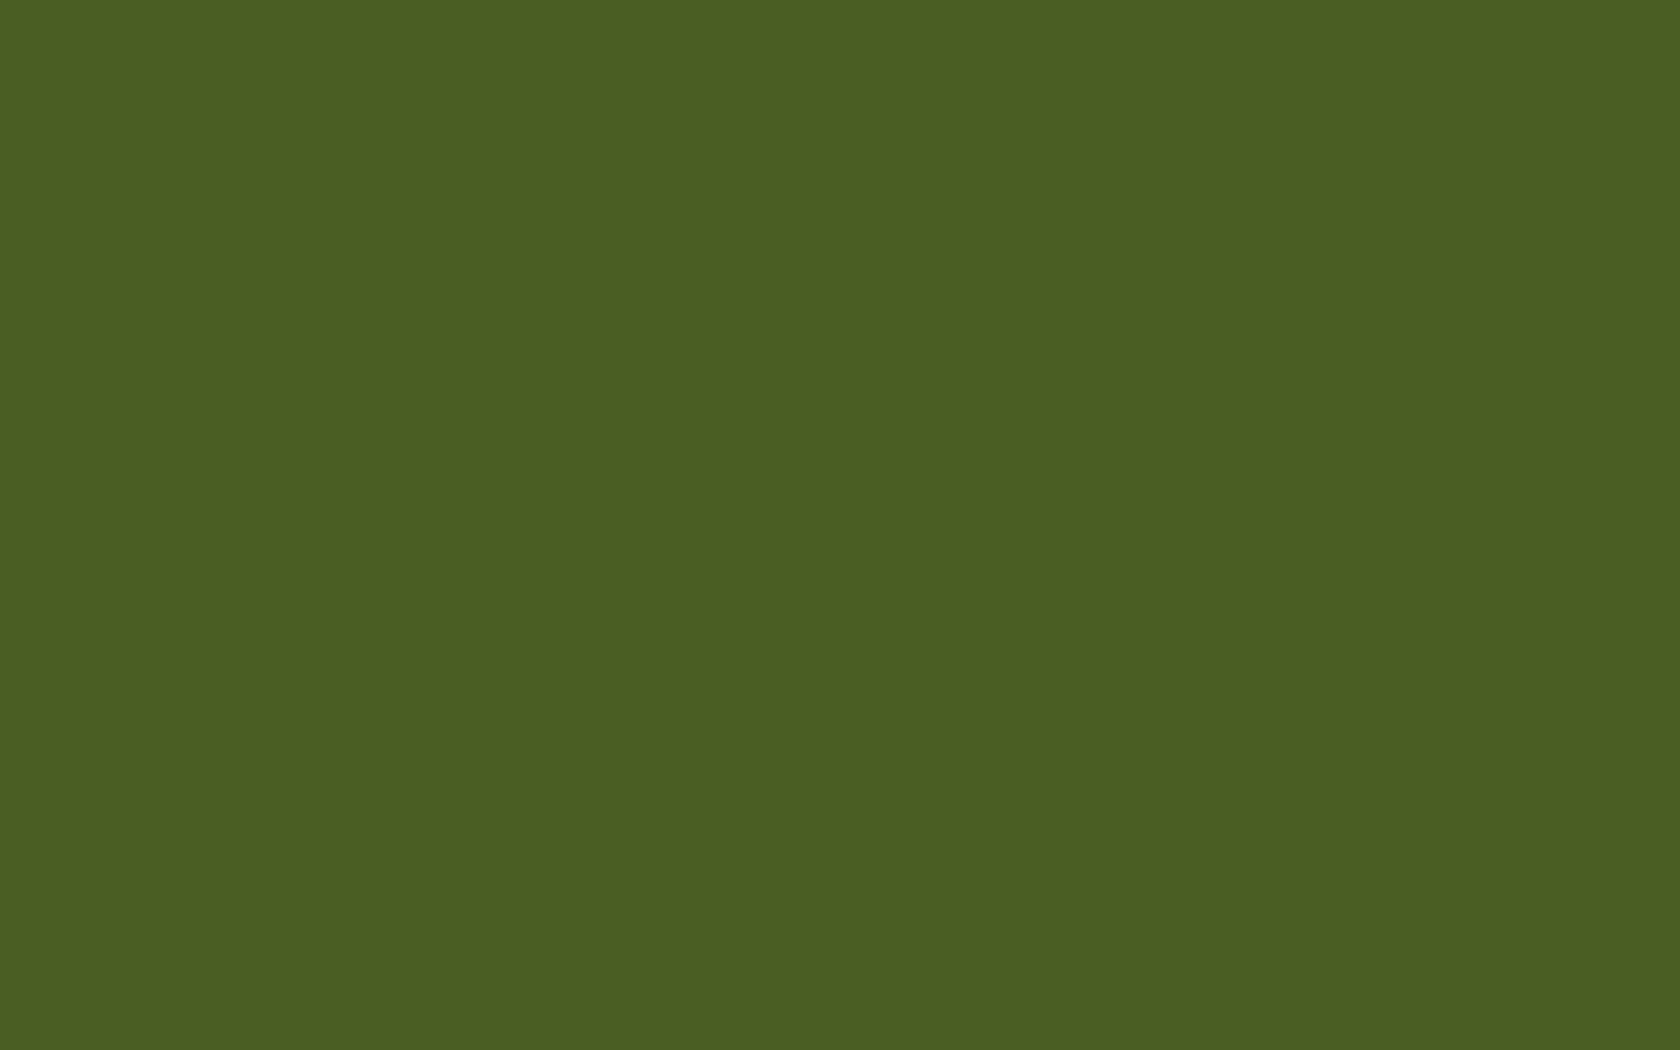 1680x1050 Dark Moss Green Solid Color Background